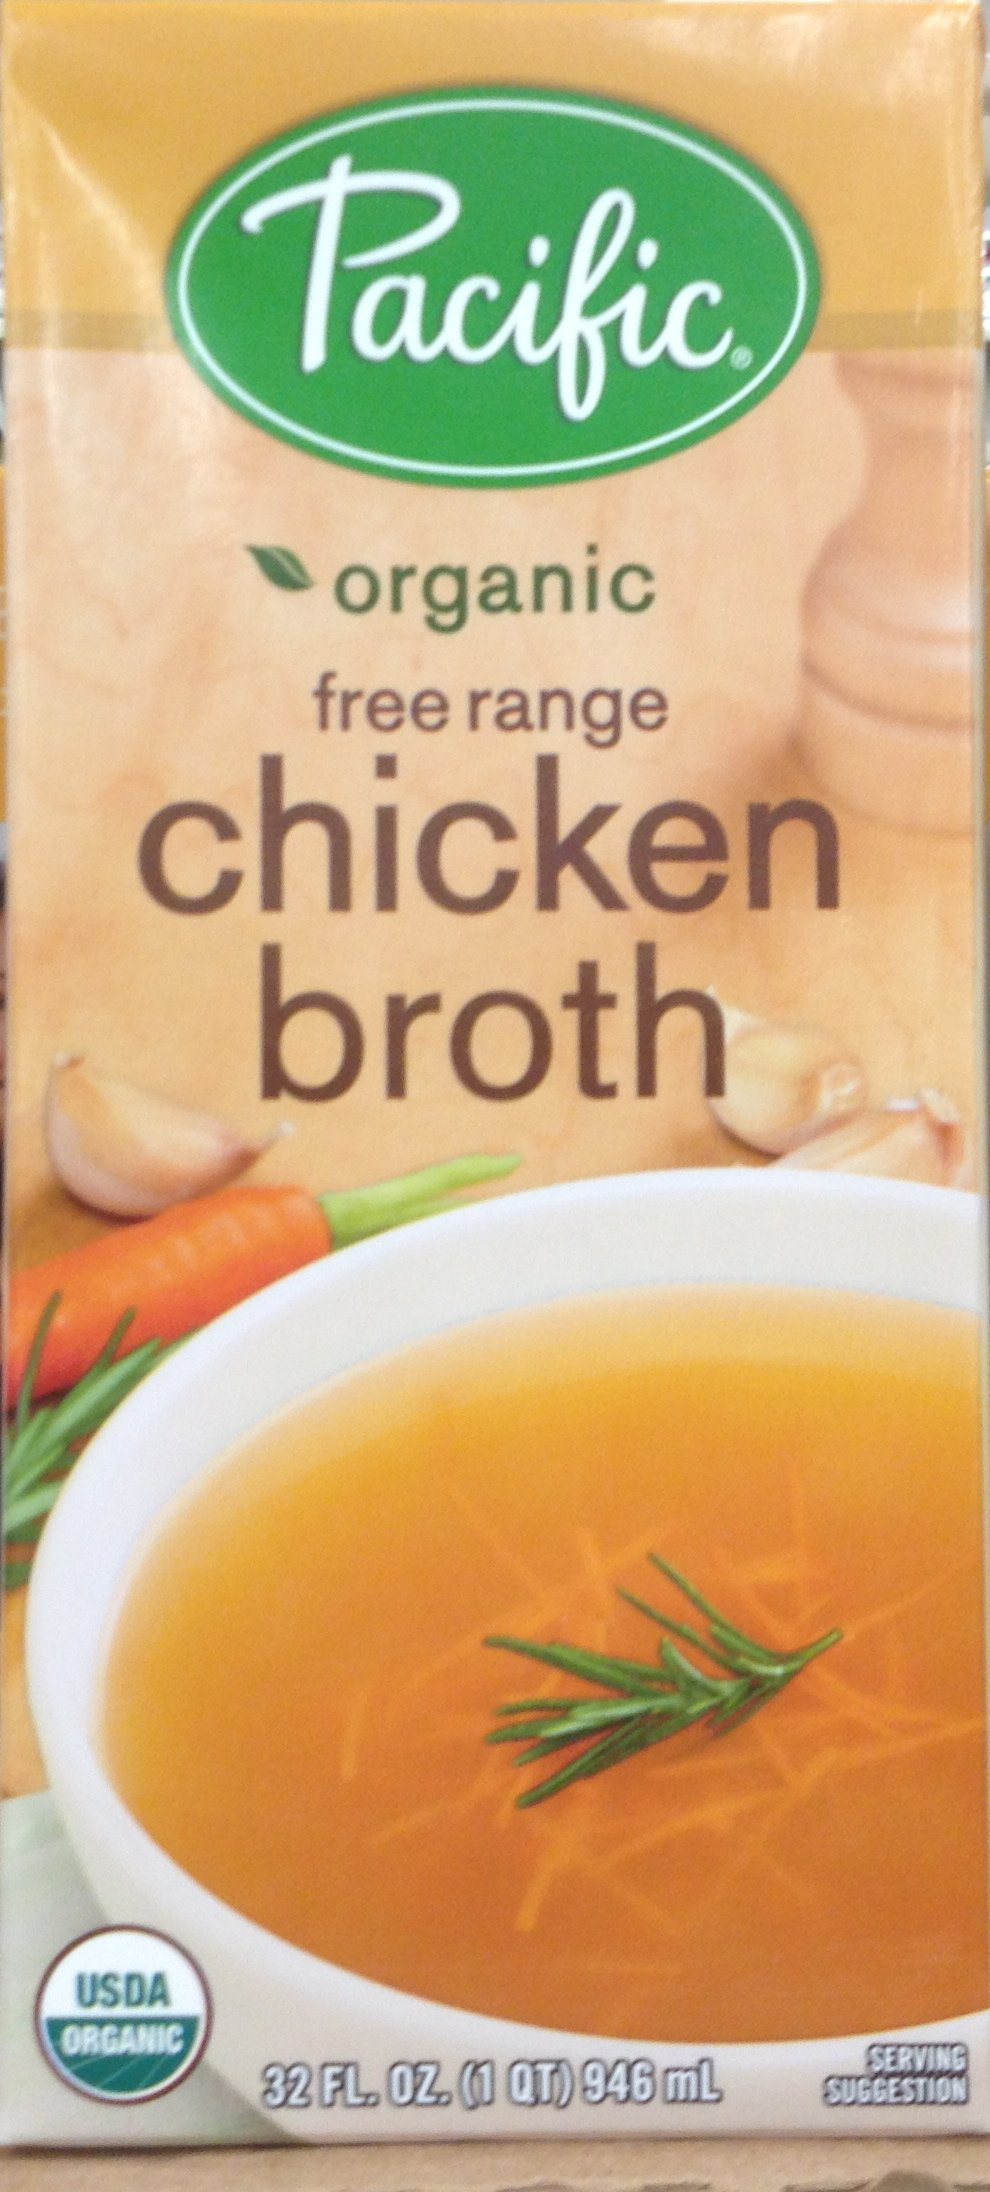 Pacific Foods Broth Chkn Frange Org Gf by Pacific Foods